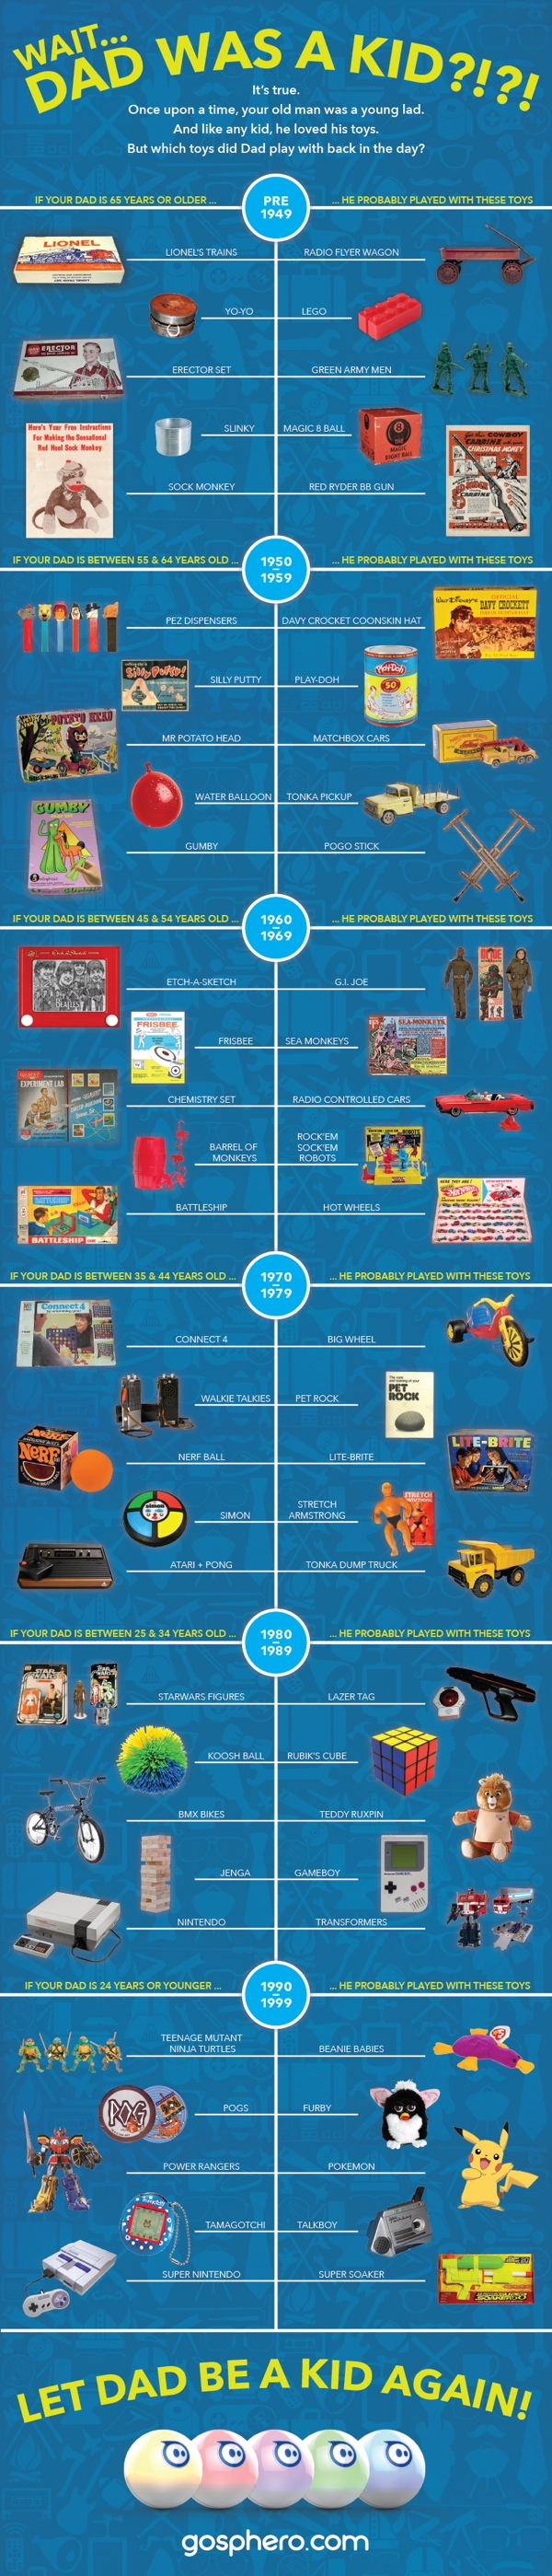 Let Dad Be A Kid Again! infographic